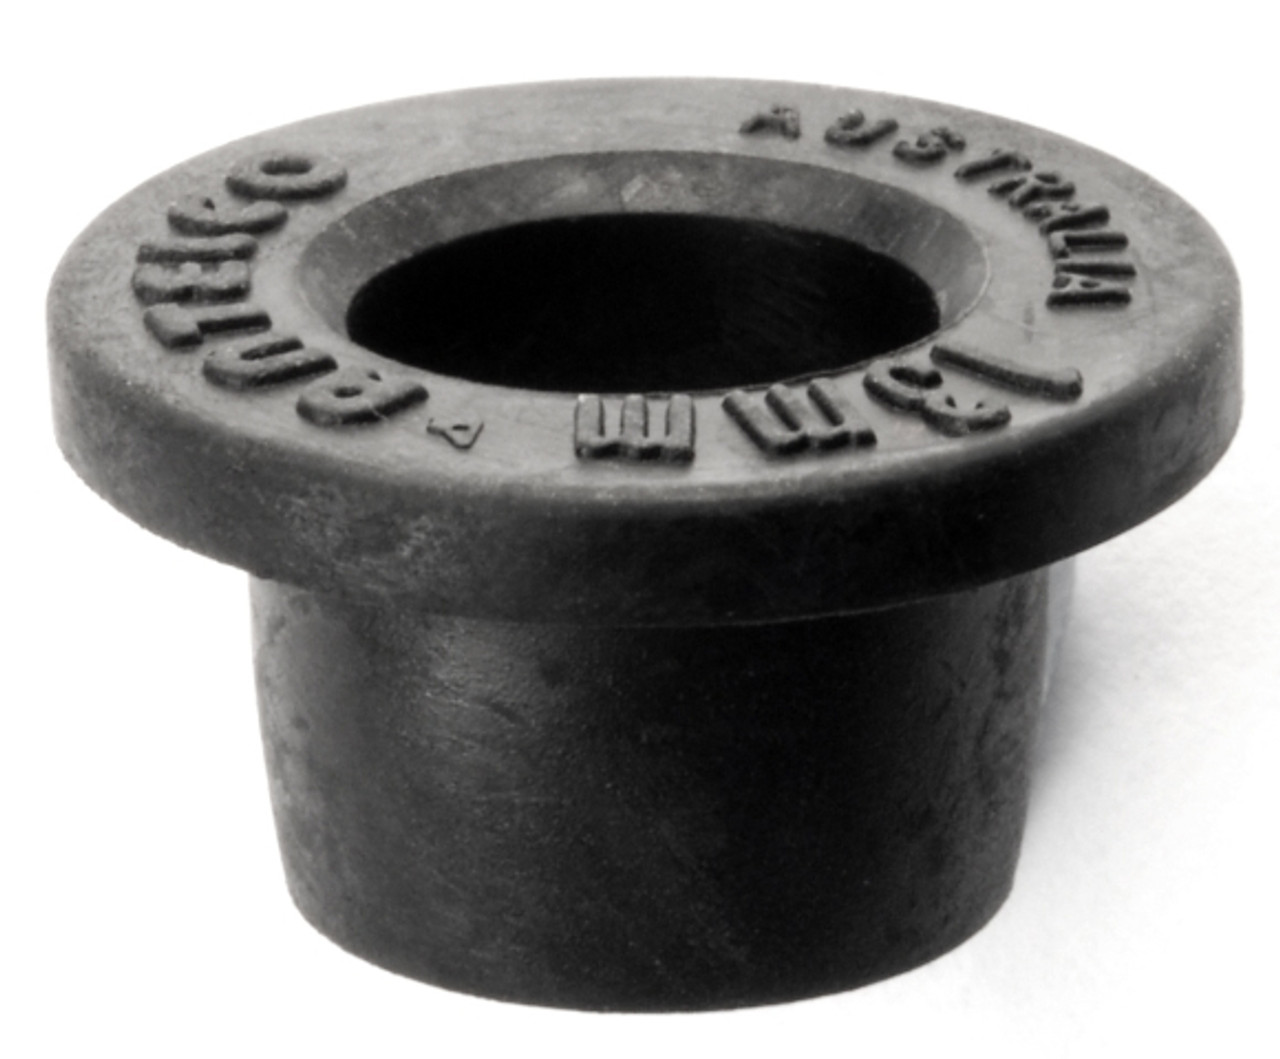 CAPO Rubber Grommet 13mm ID for XPANDO fittings